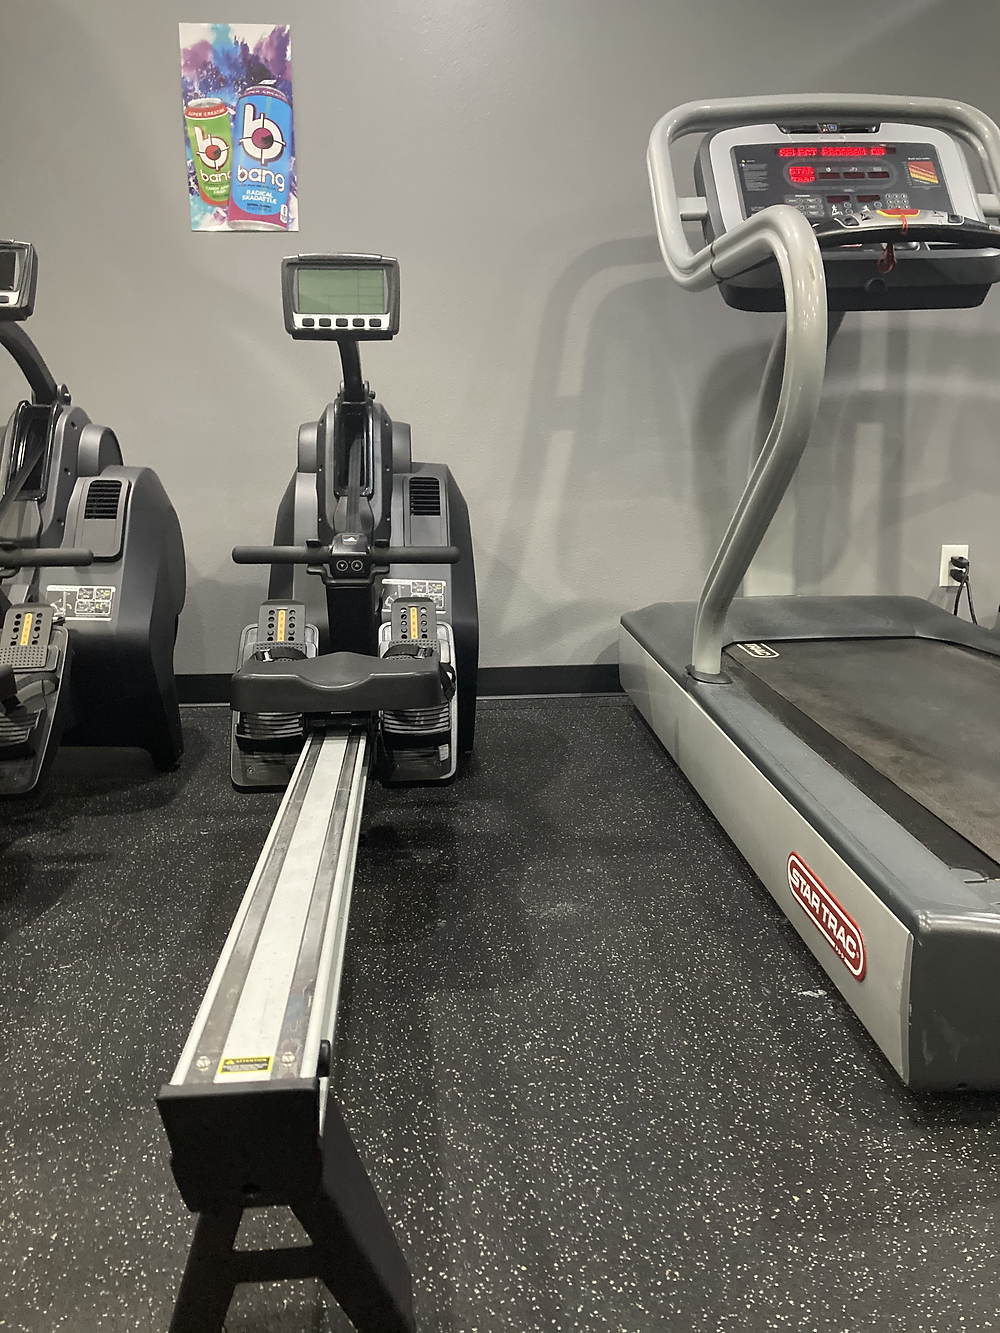 Image of a rower machine used for cardio. Found in the best gym in South Tampa.